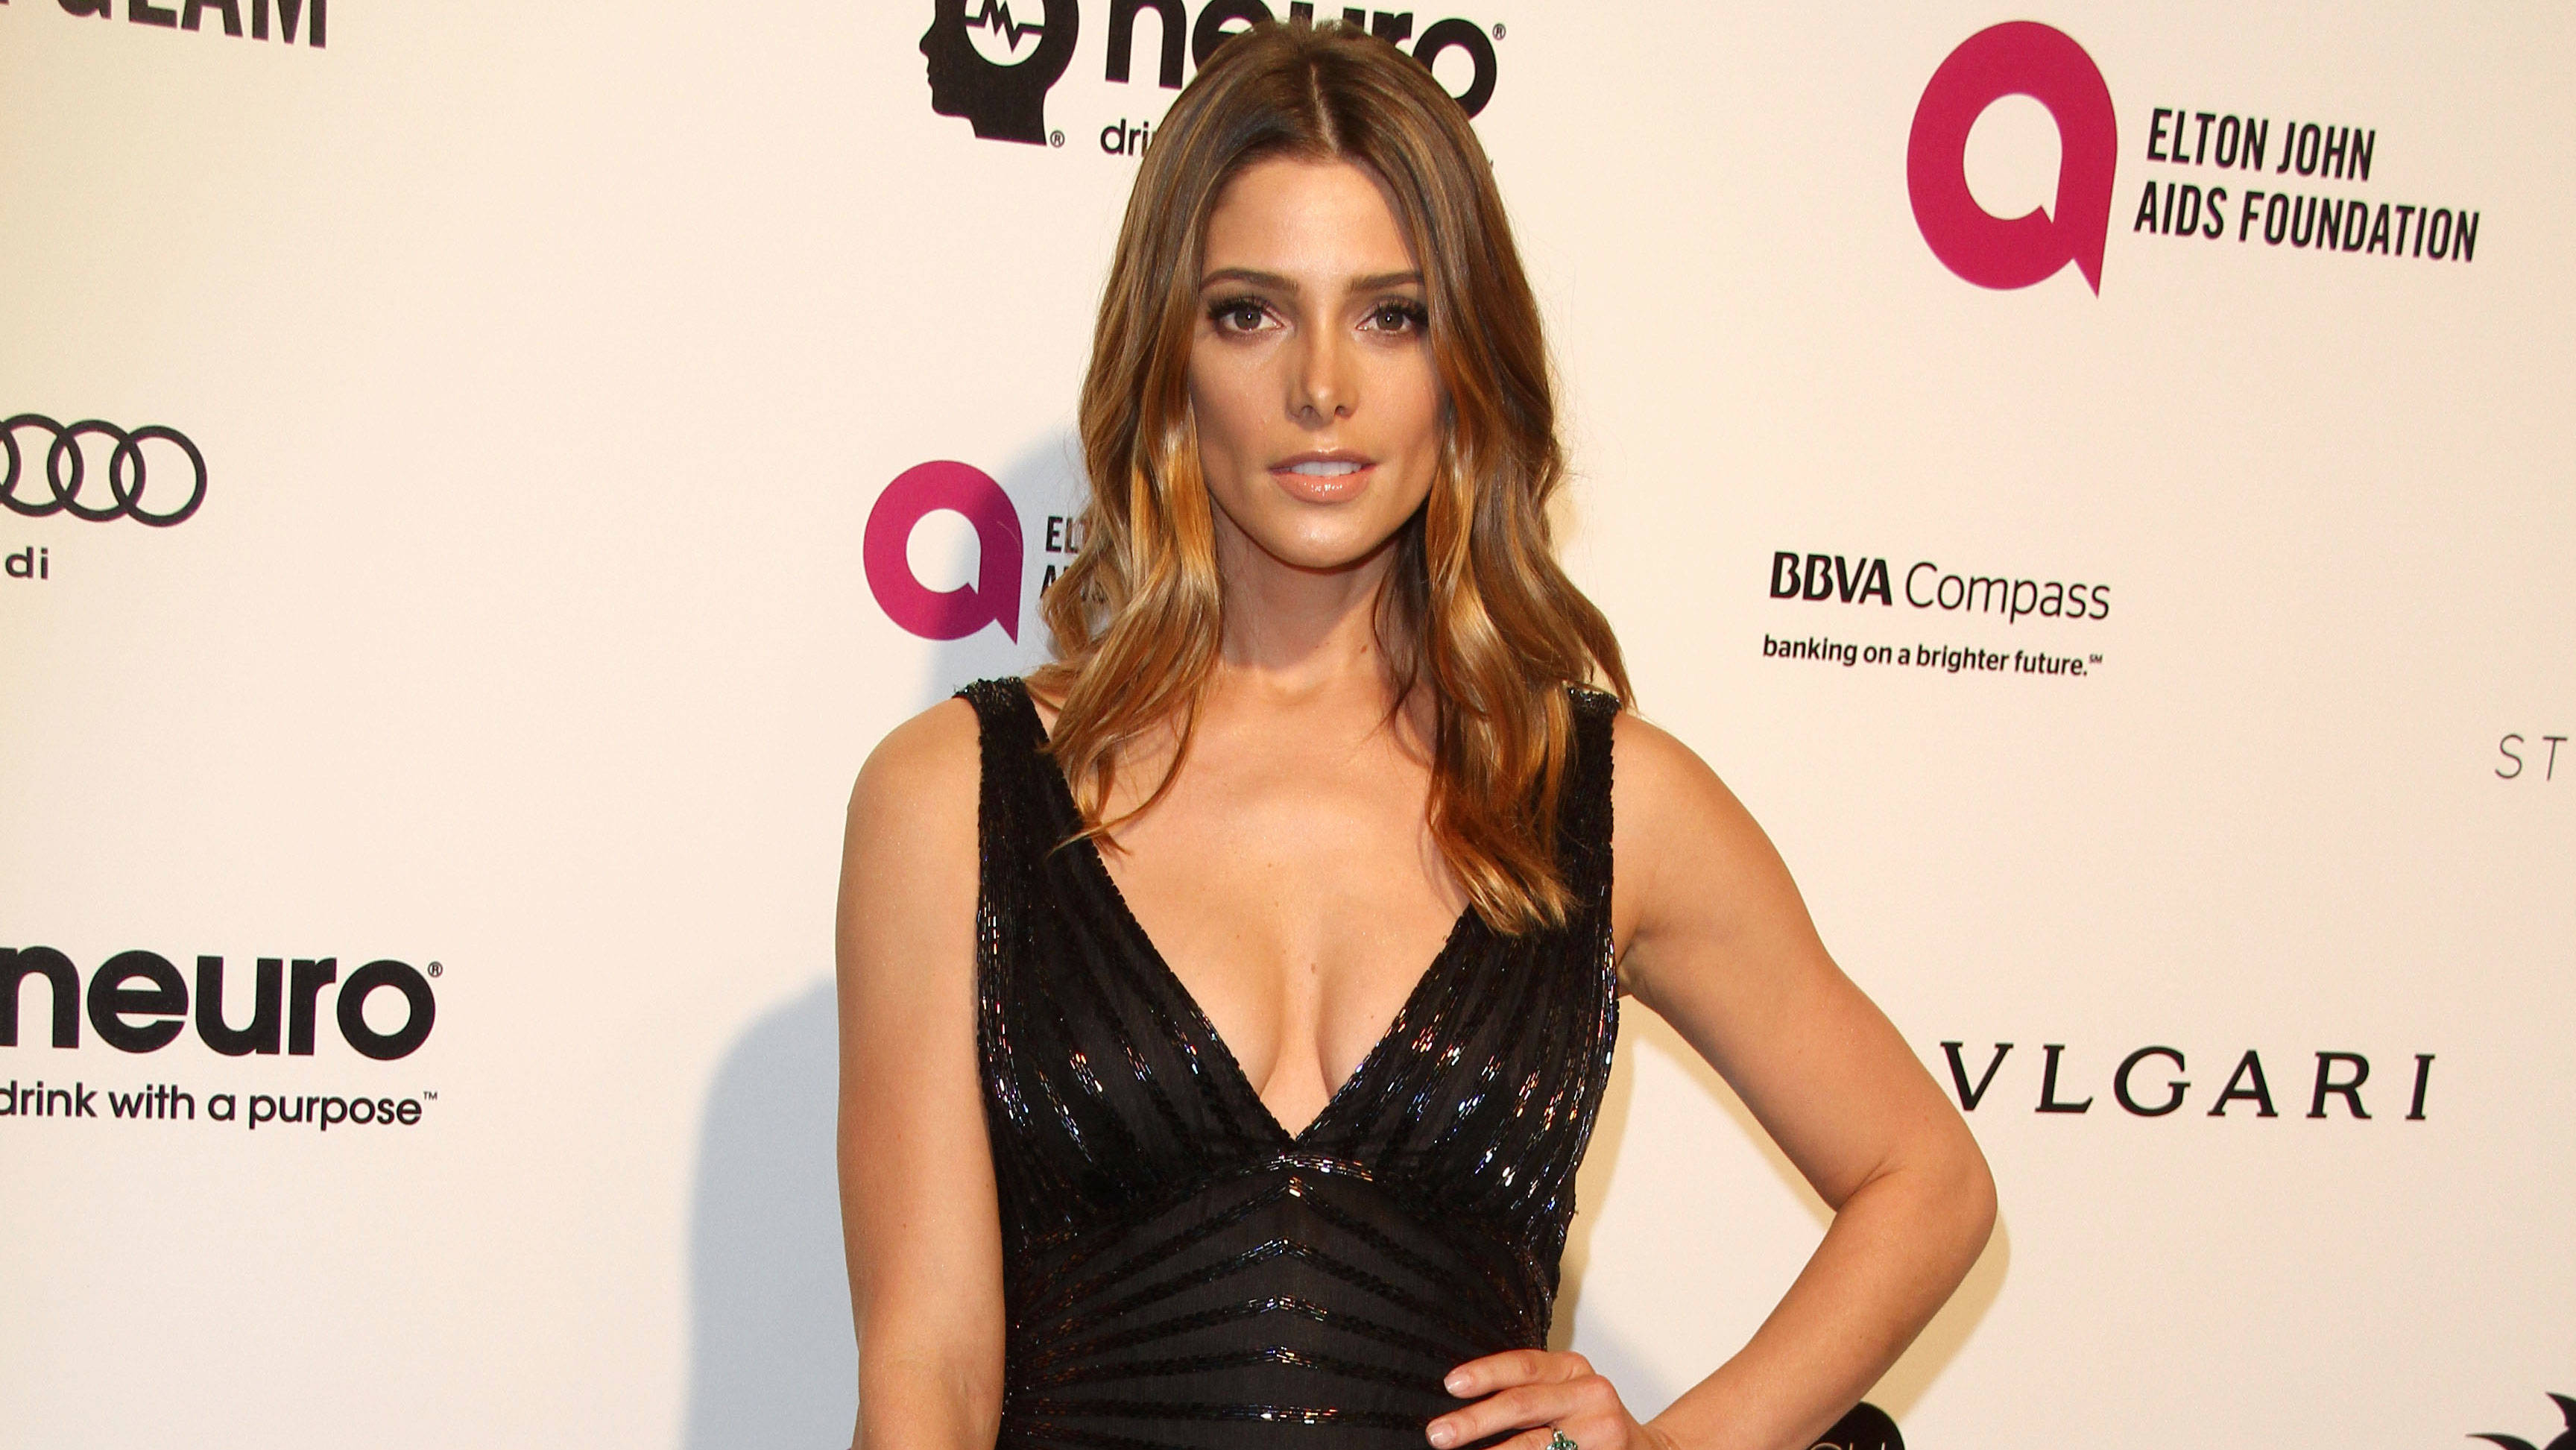 Remarkable, very ashley greene leaked nude that can